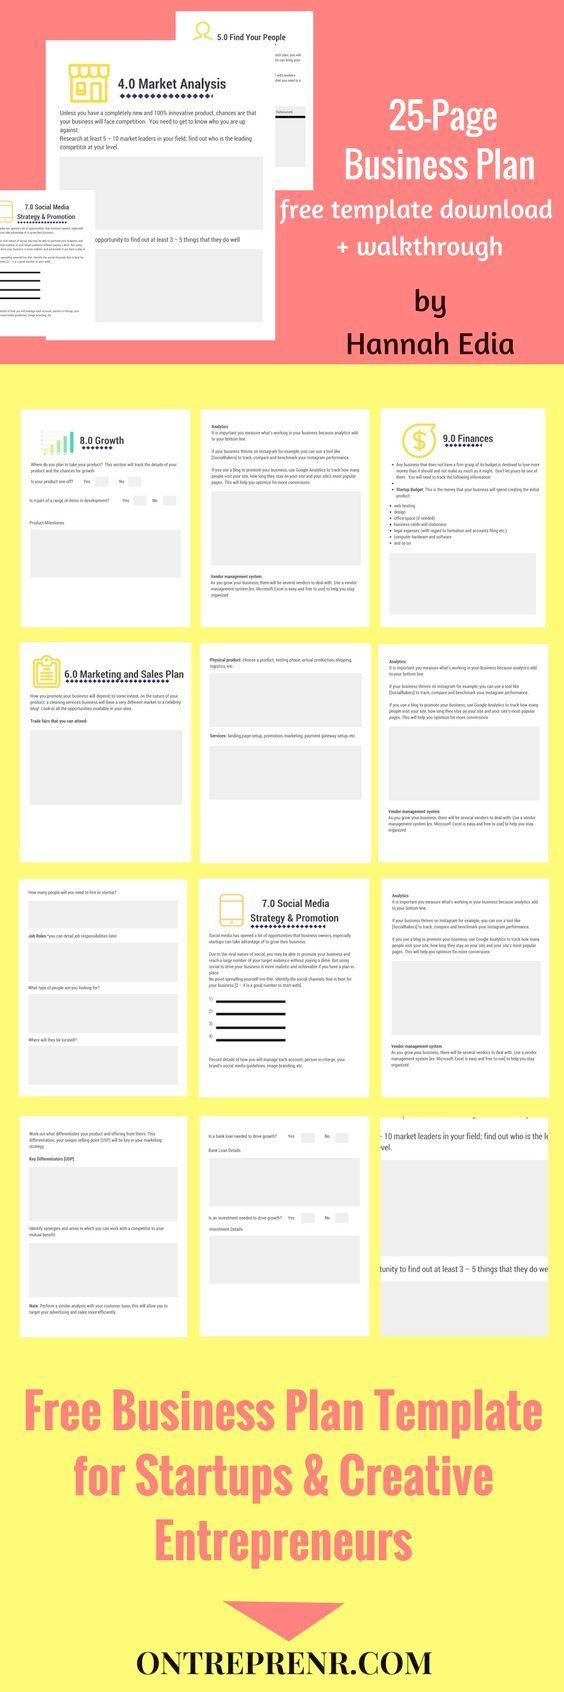 Thesis template ukm